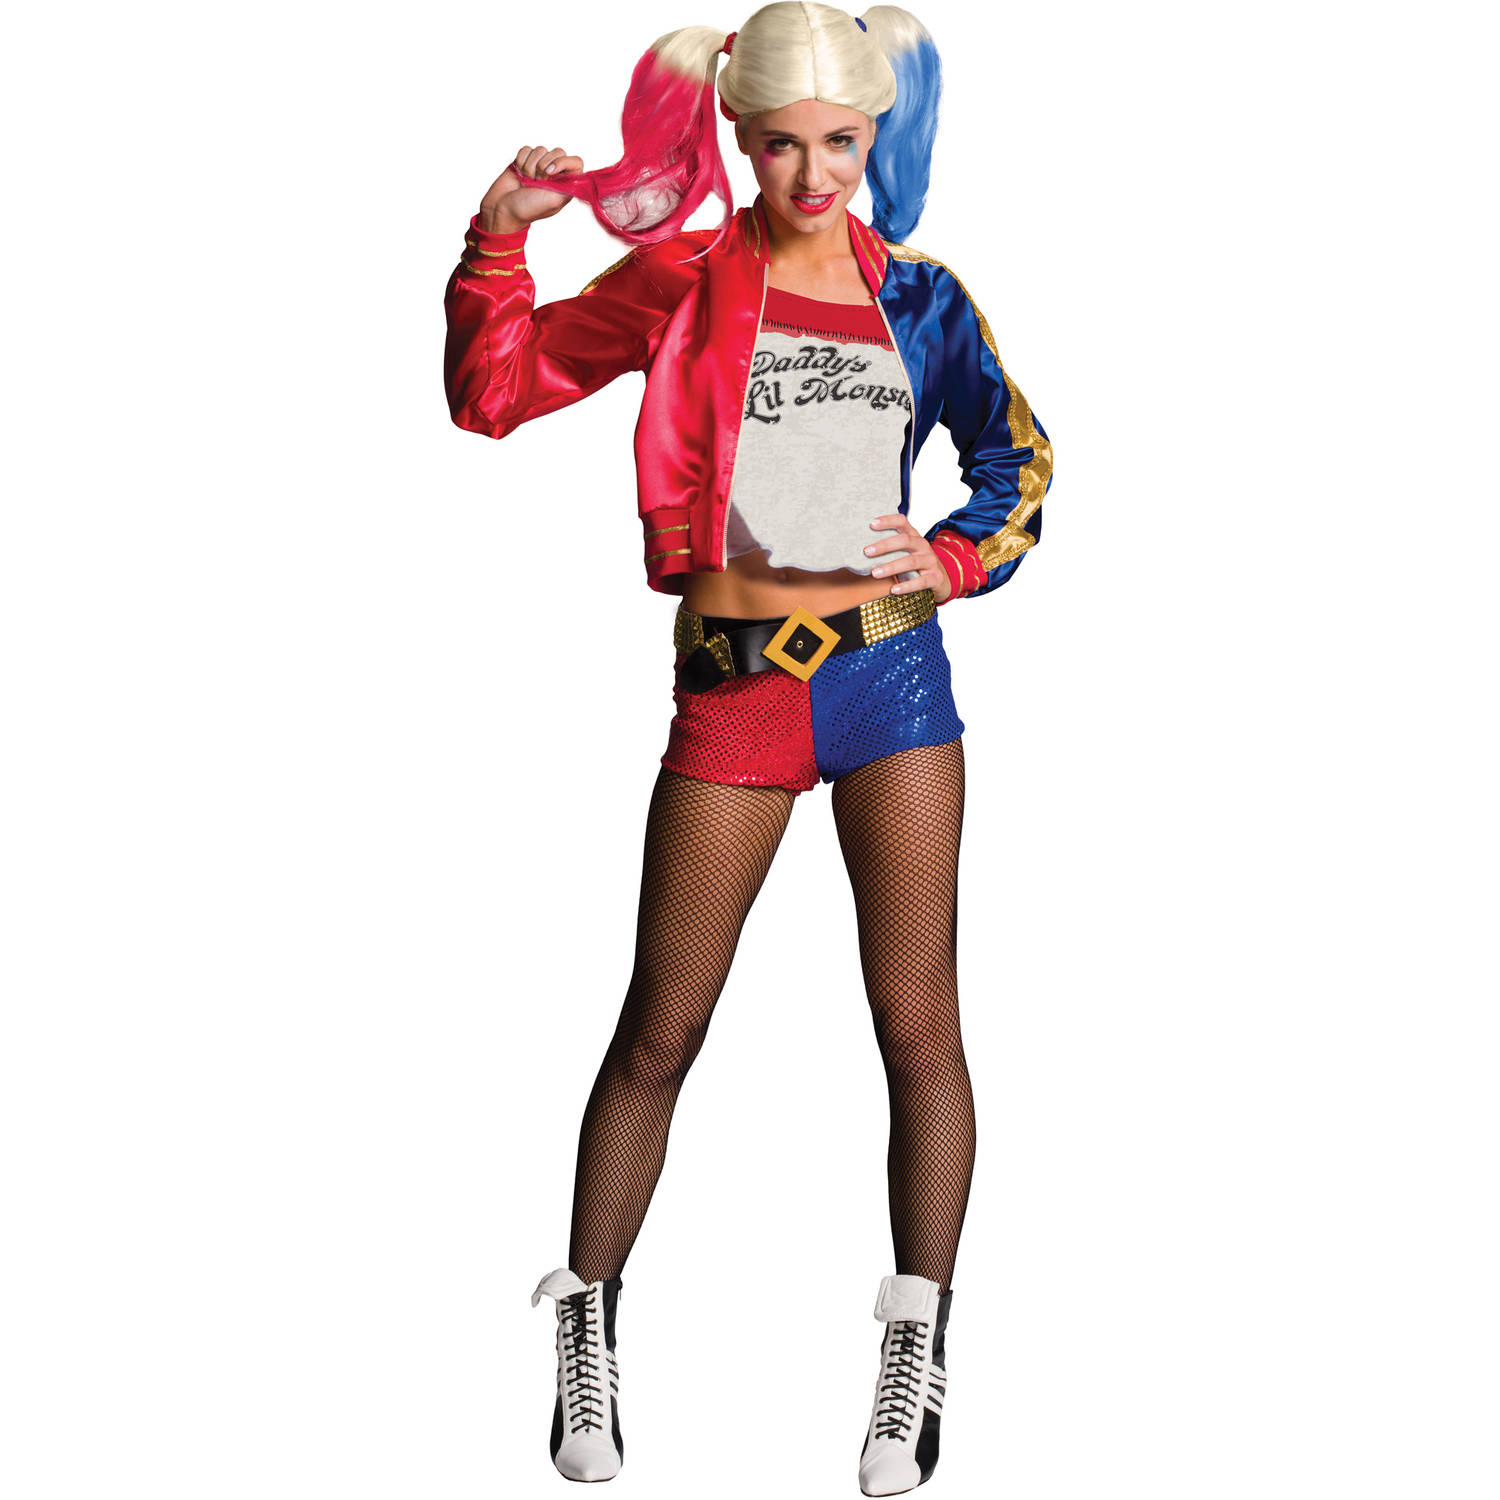 Harley Quinn Adult Halloween Costume